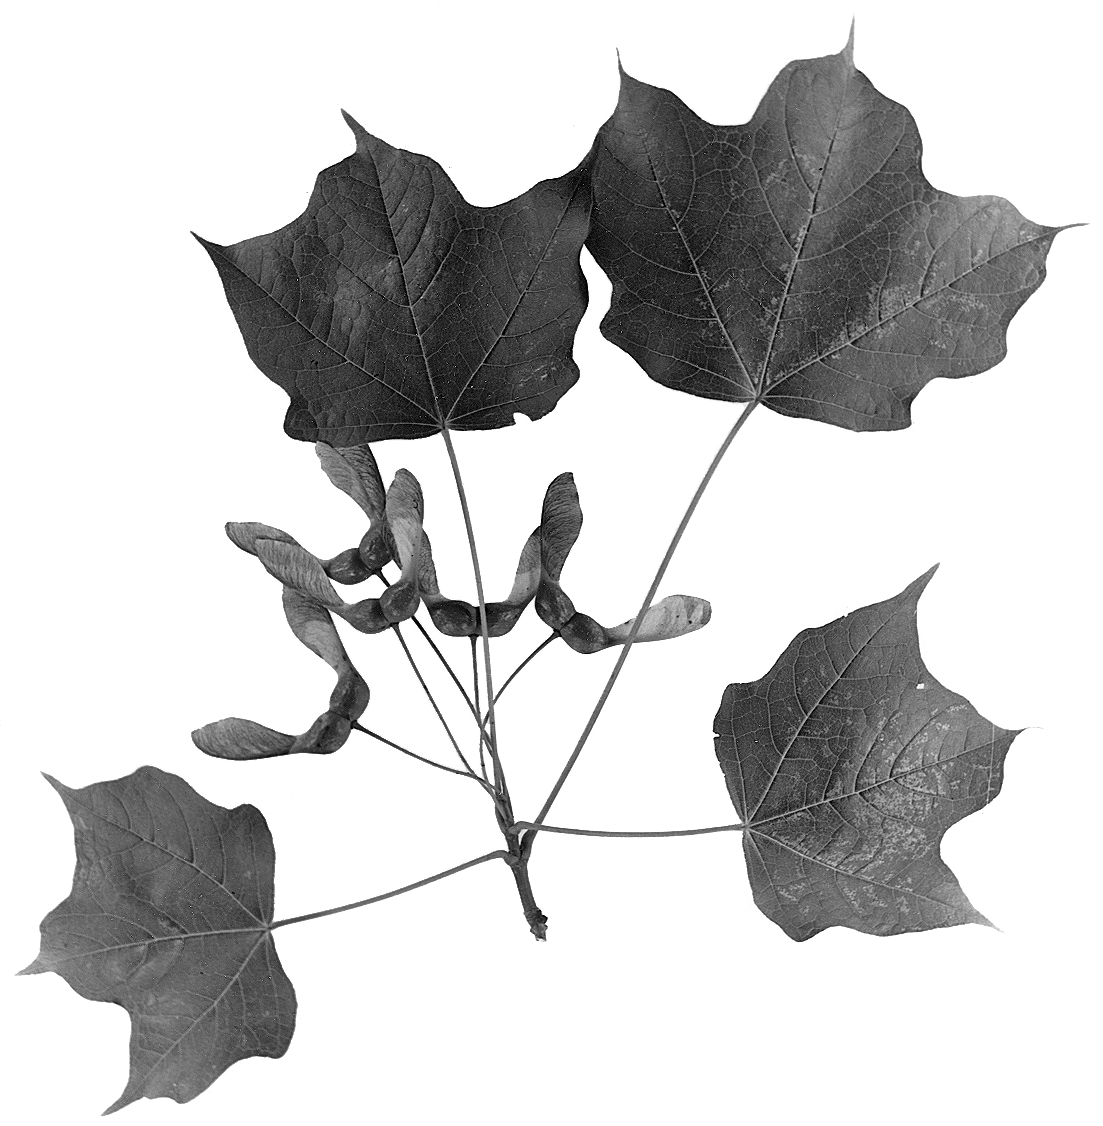 Fileacer Nigrum Leaves 1png Wikimedia Commons